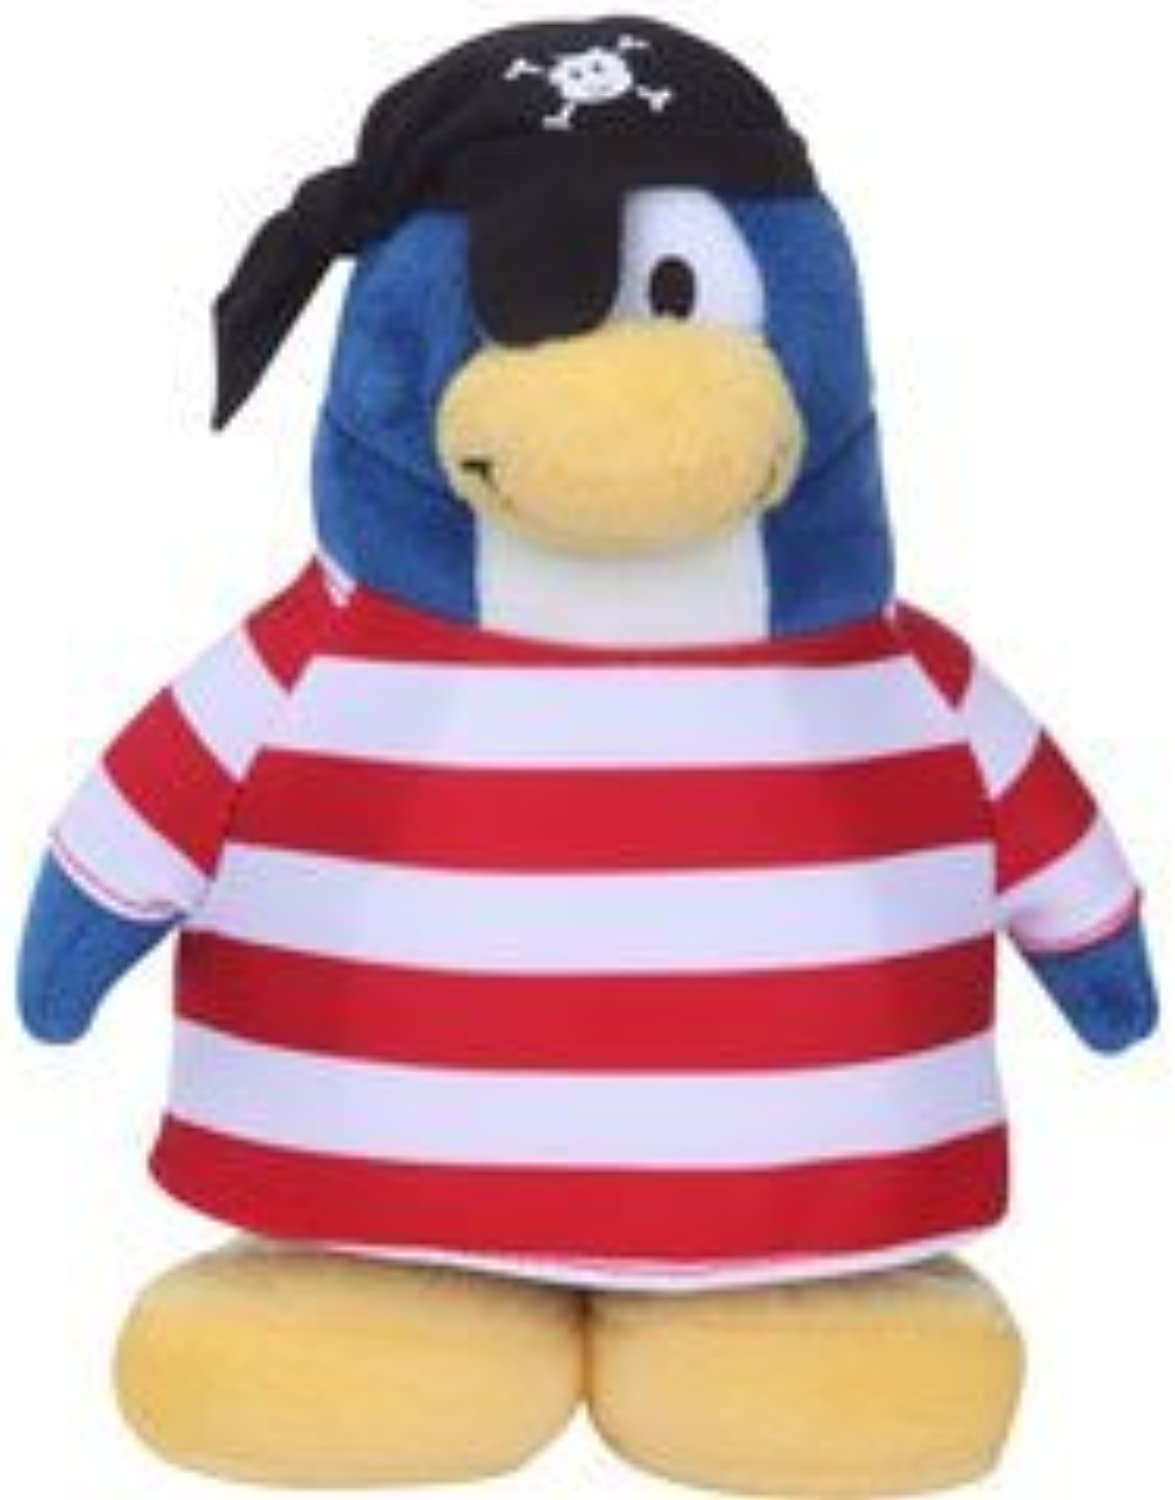 Club Penguin 6.5 Plush Wave 4 (Penguins Will Vary) by Club Penguin